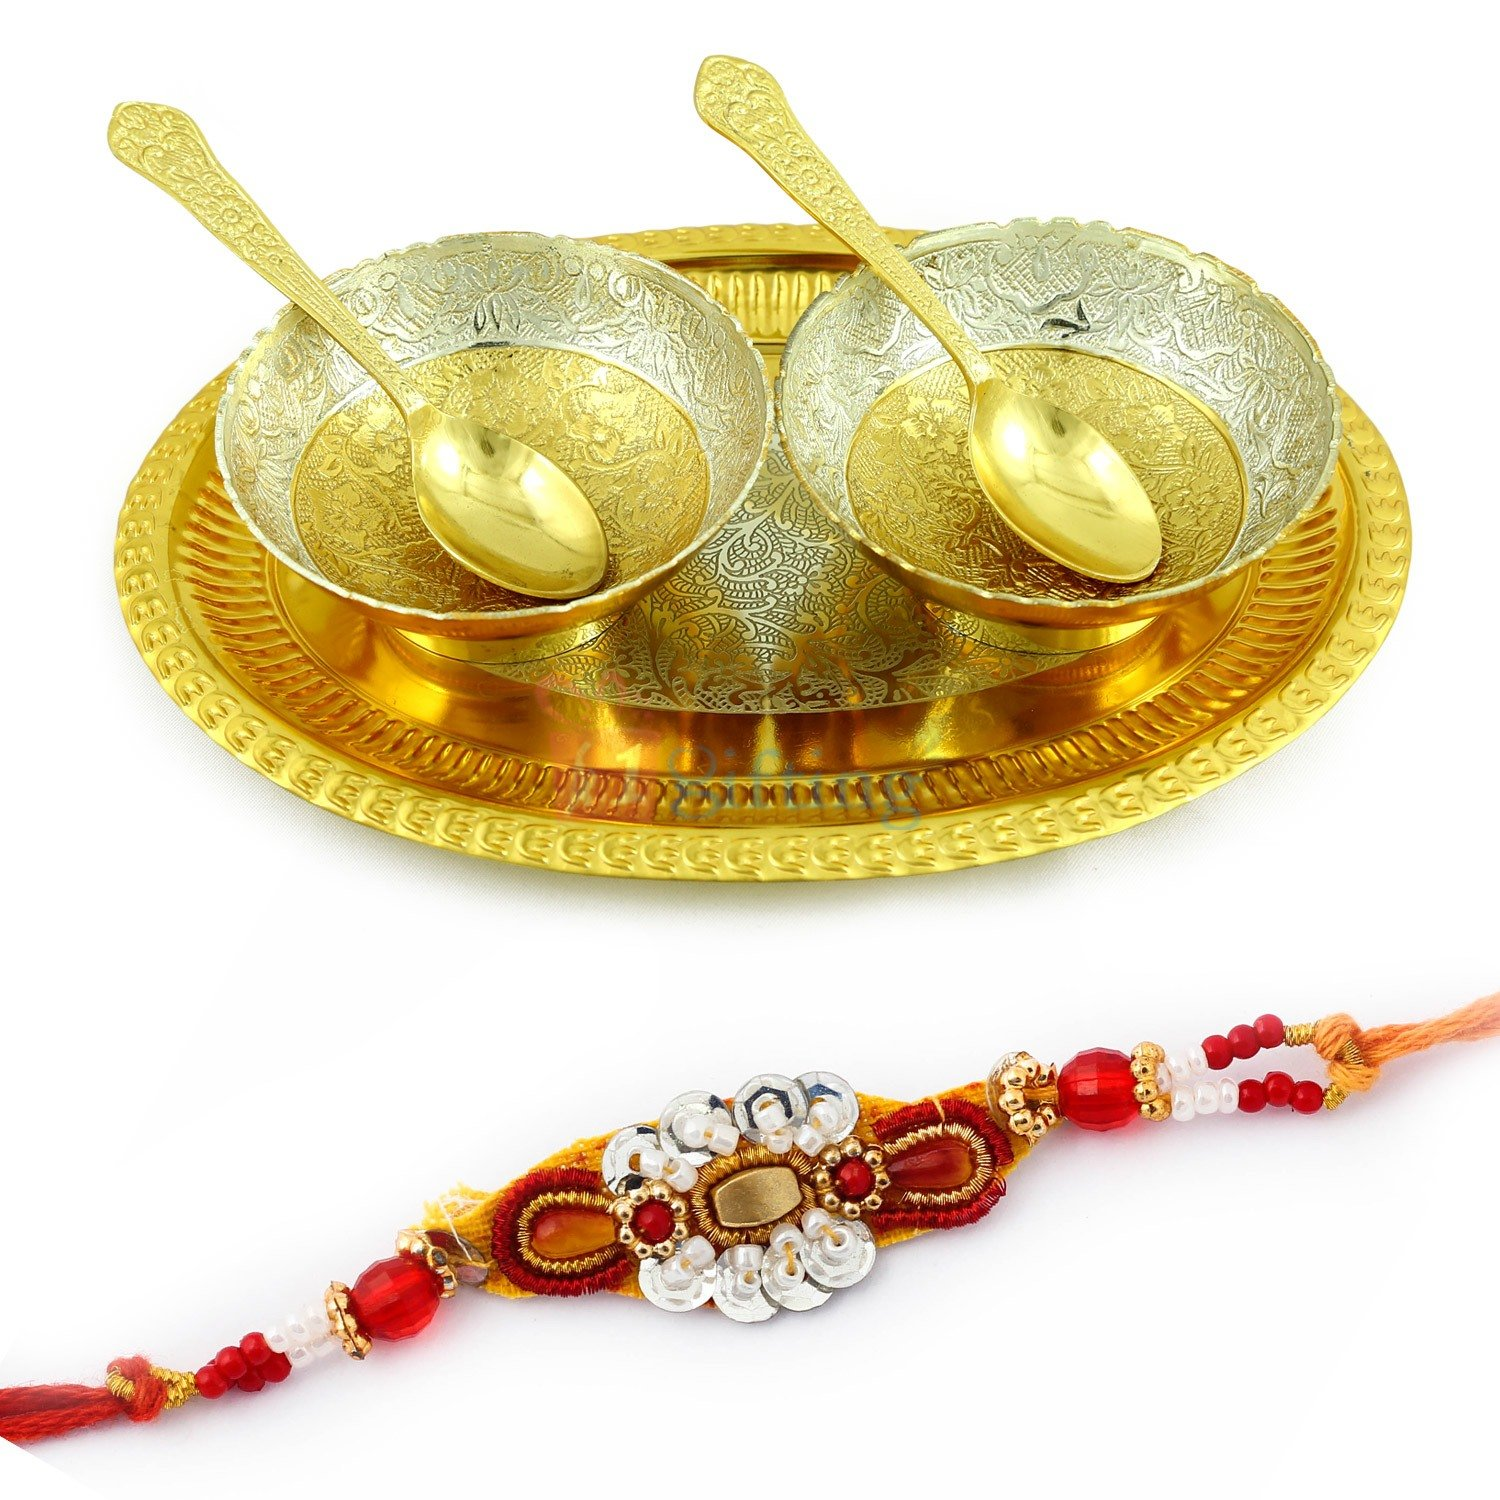 Oval Tray Bowl and Spoons of Brass Gift Hamper with Fancy Looking Rakhi